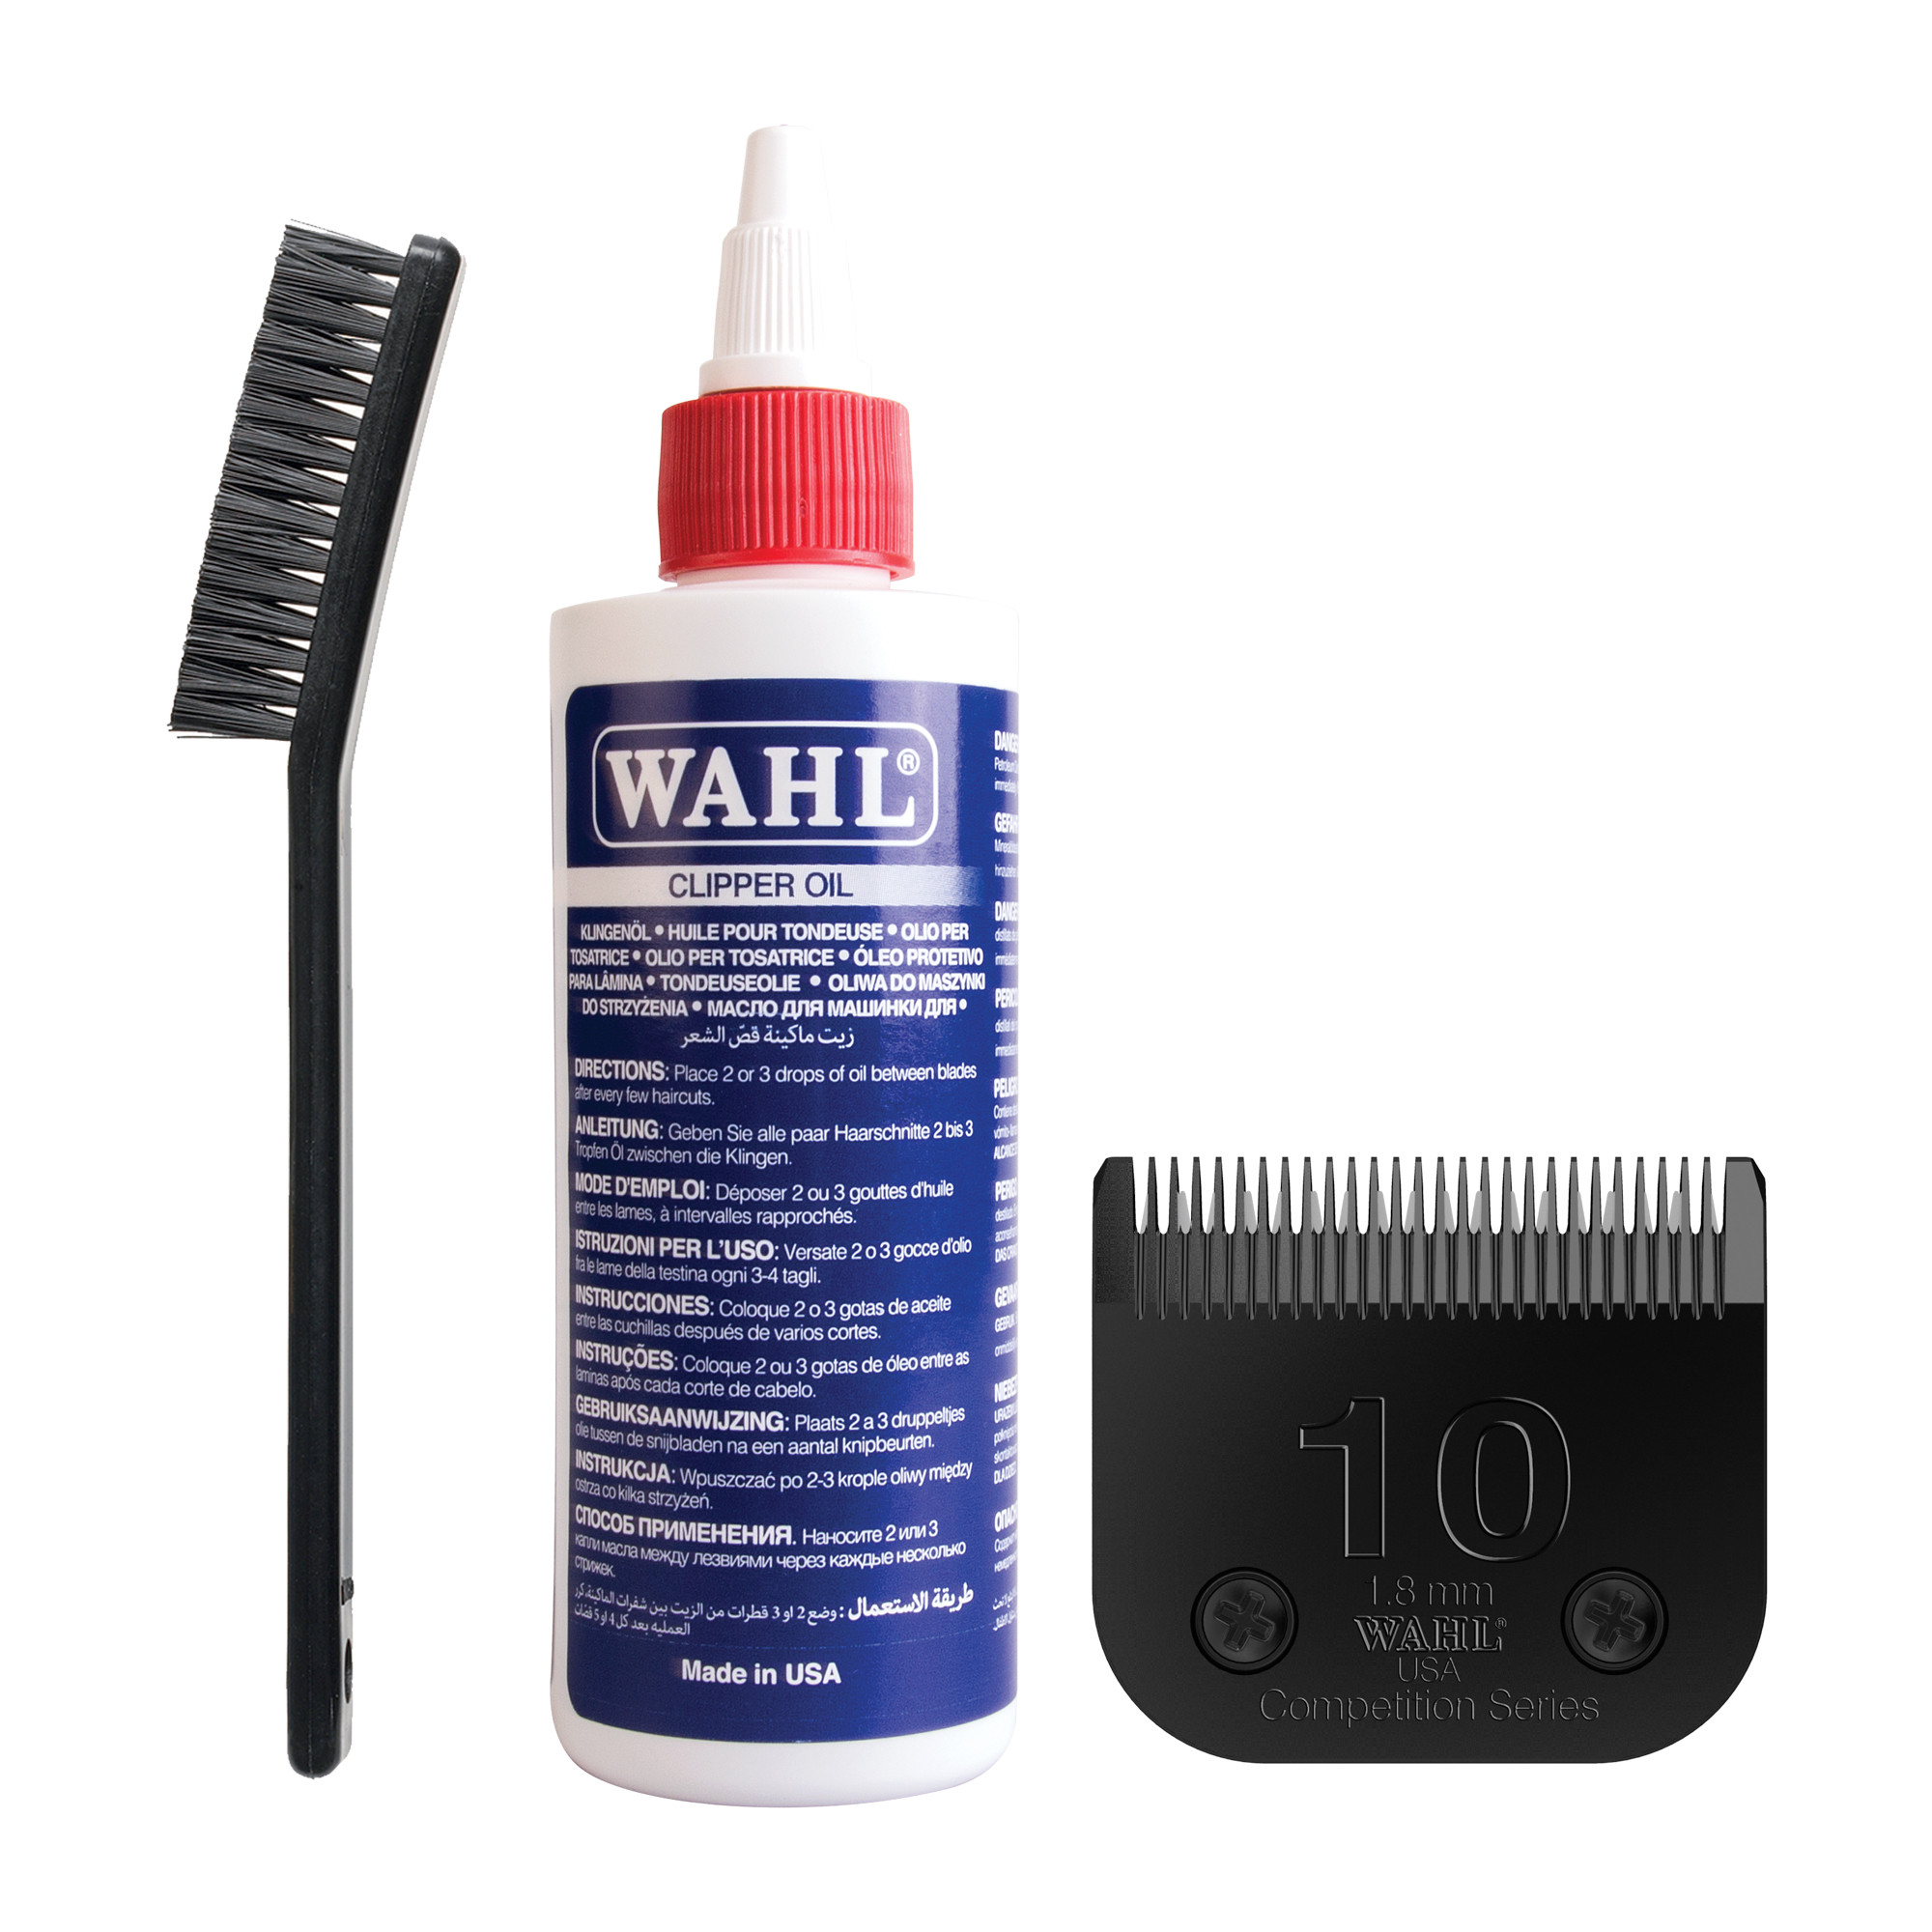 Wahl Km Cordless Clipper Burtons Grooming Direct Classic Series 1 Usa Regular Price 27000